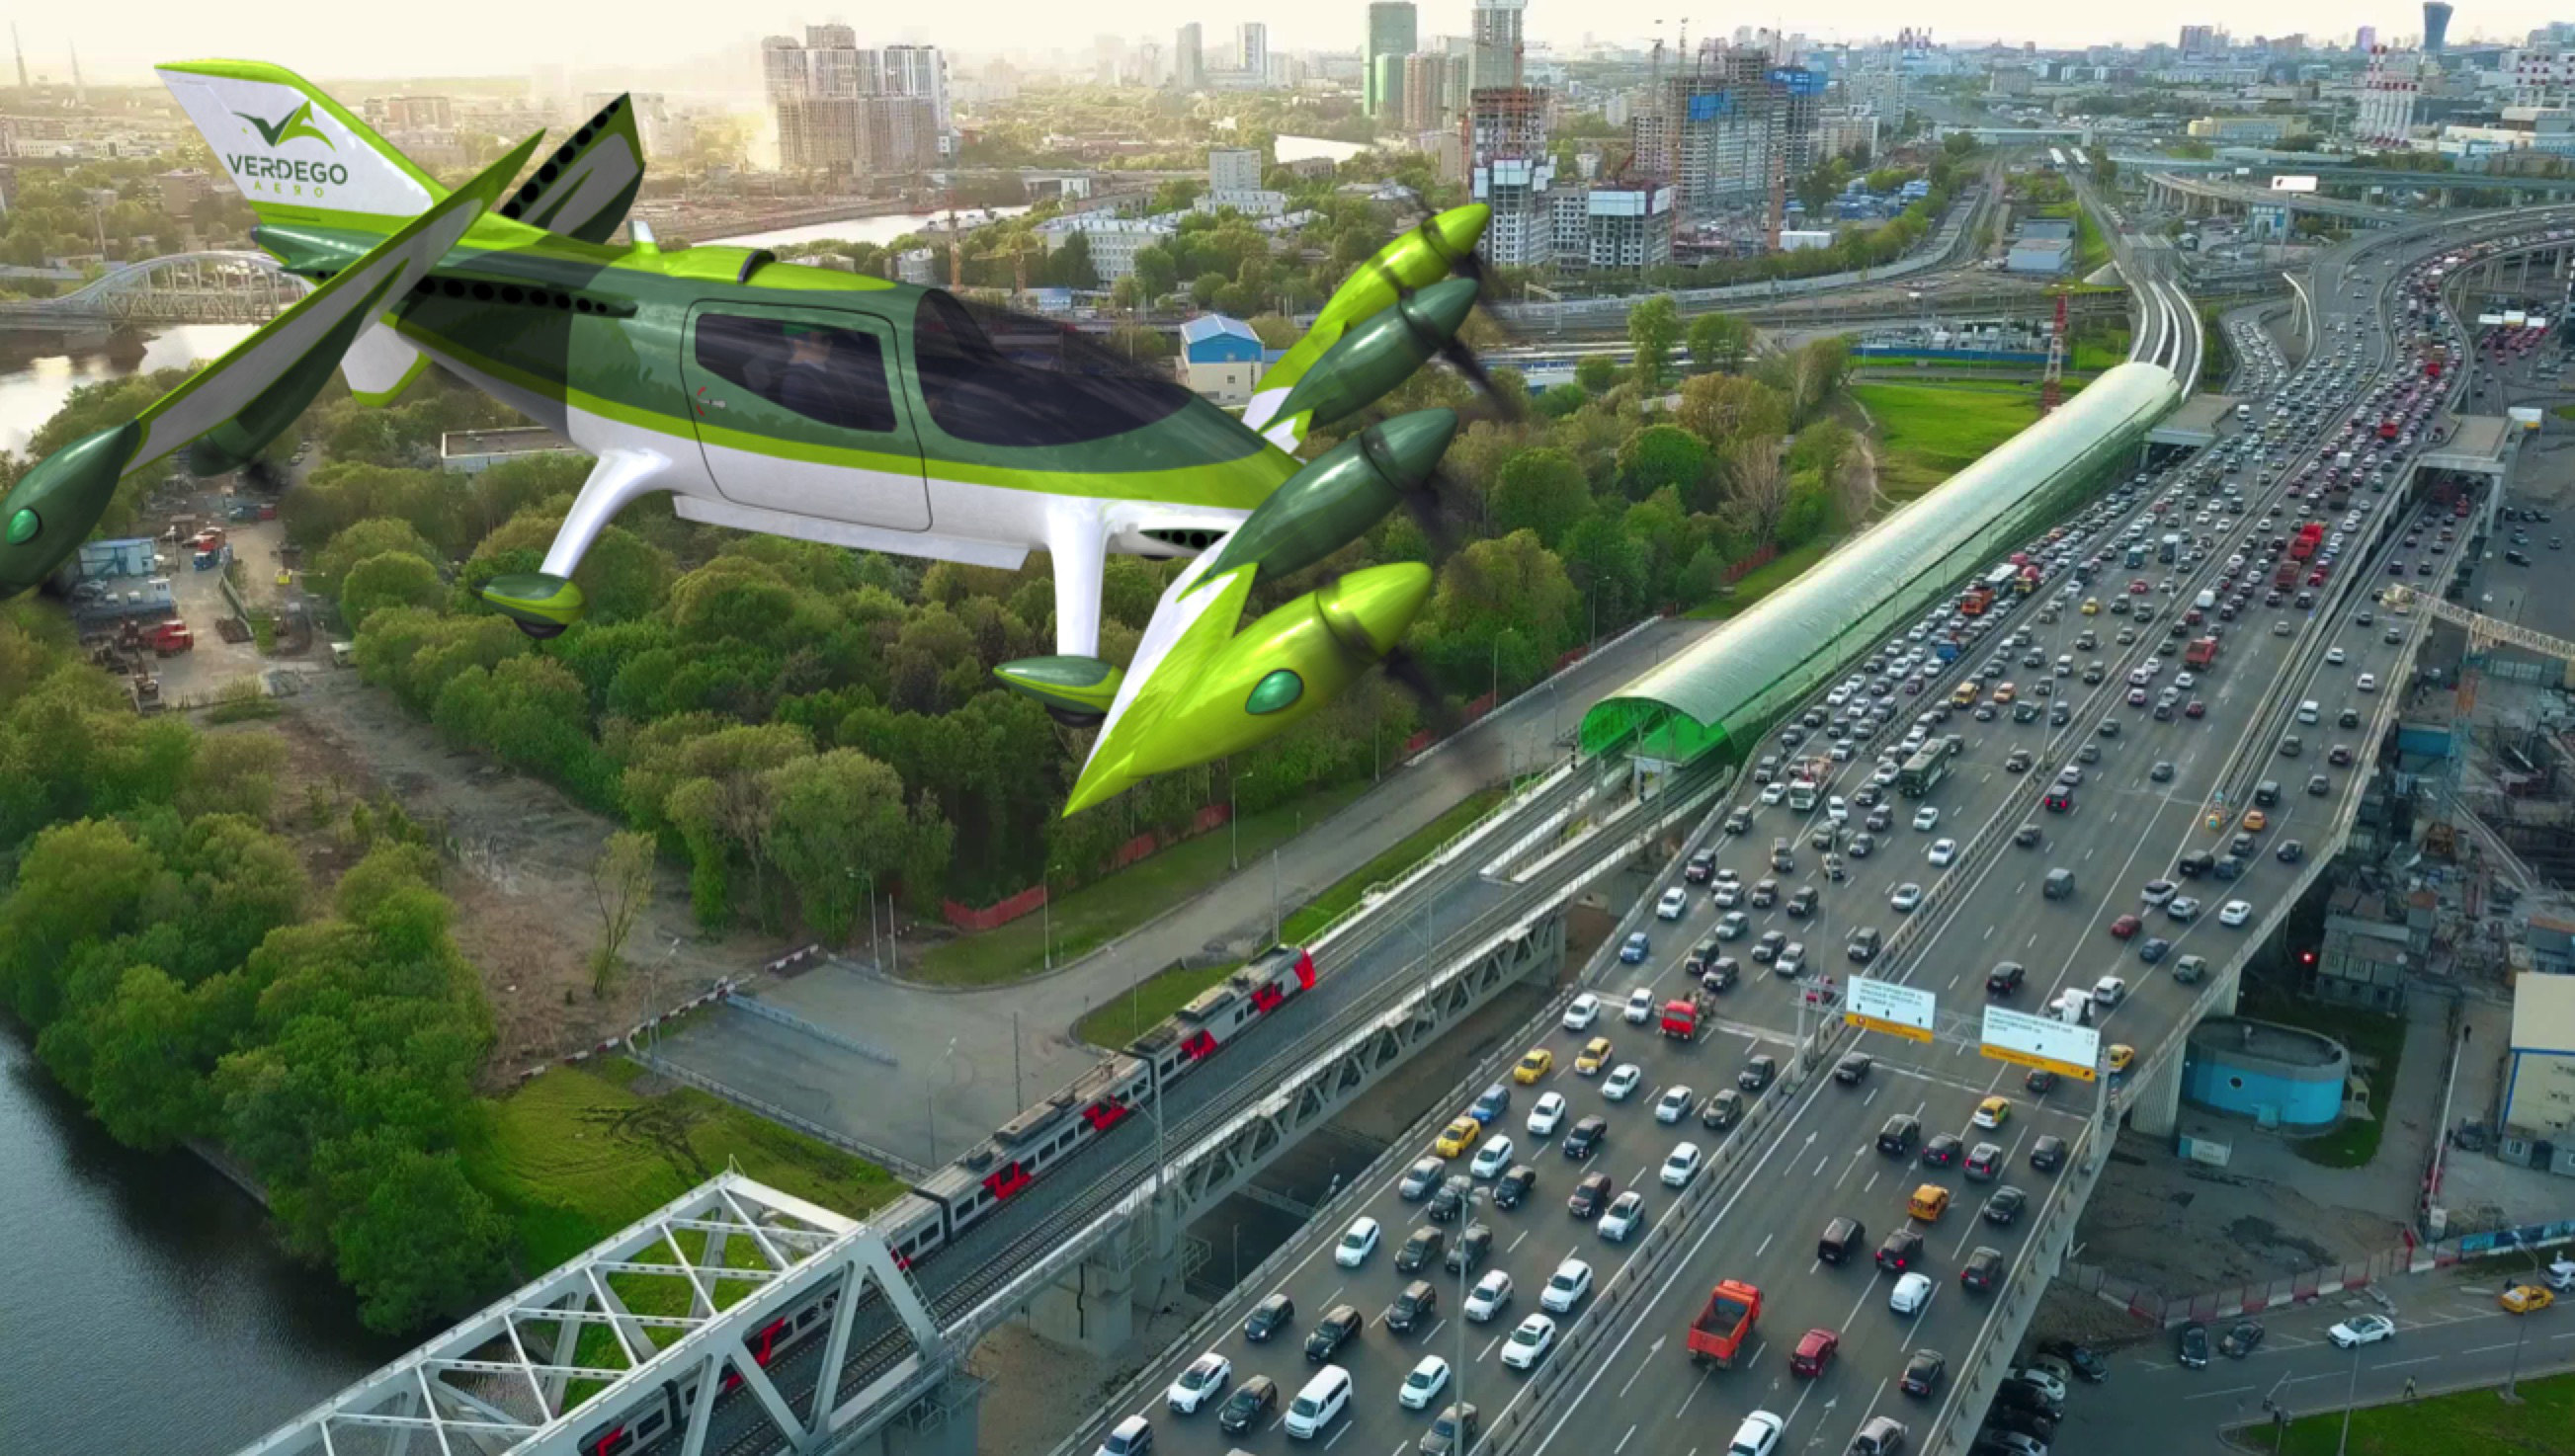 urban air taxi VerdeGo over traffic